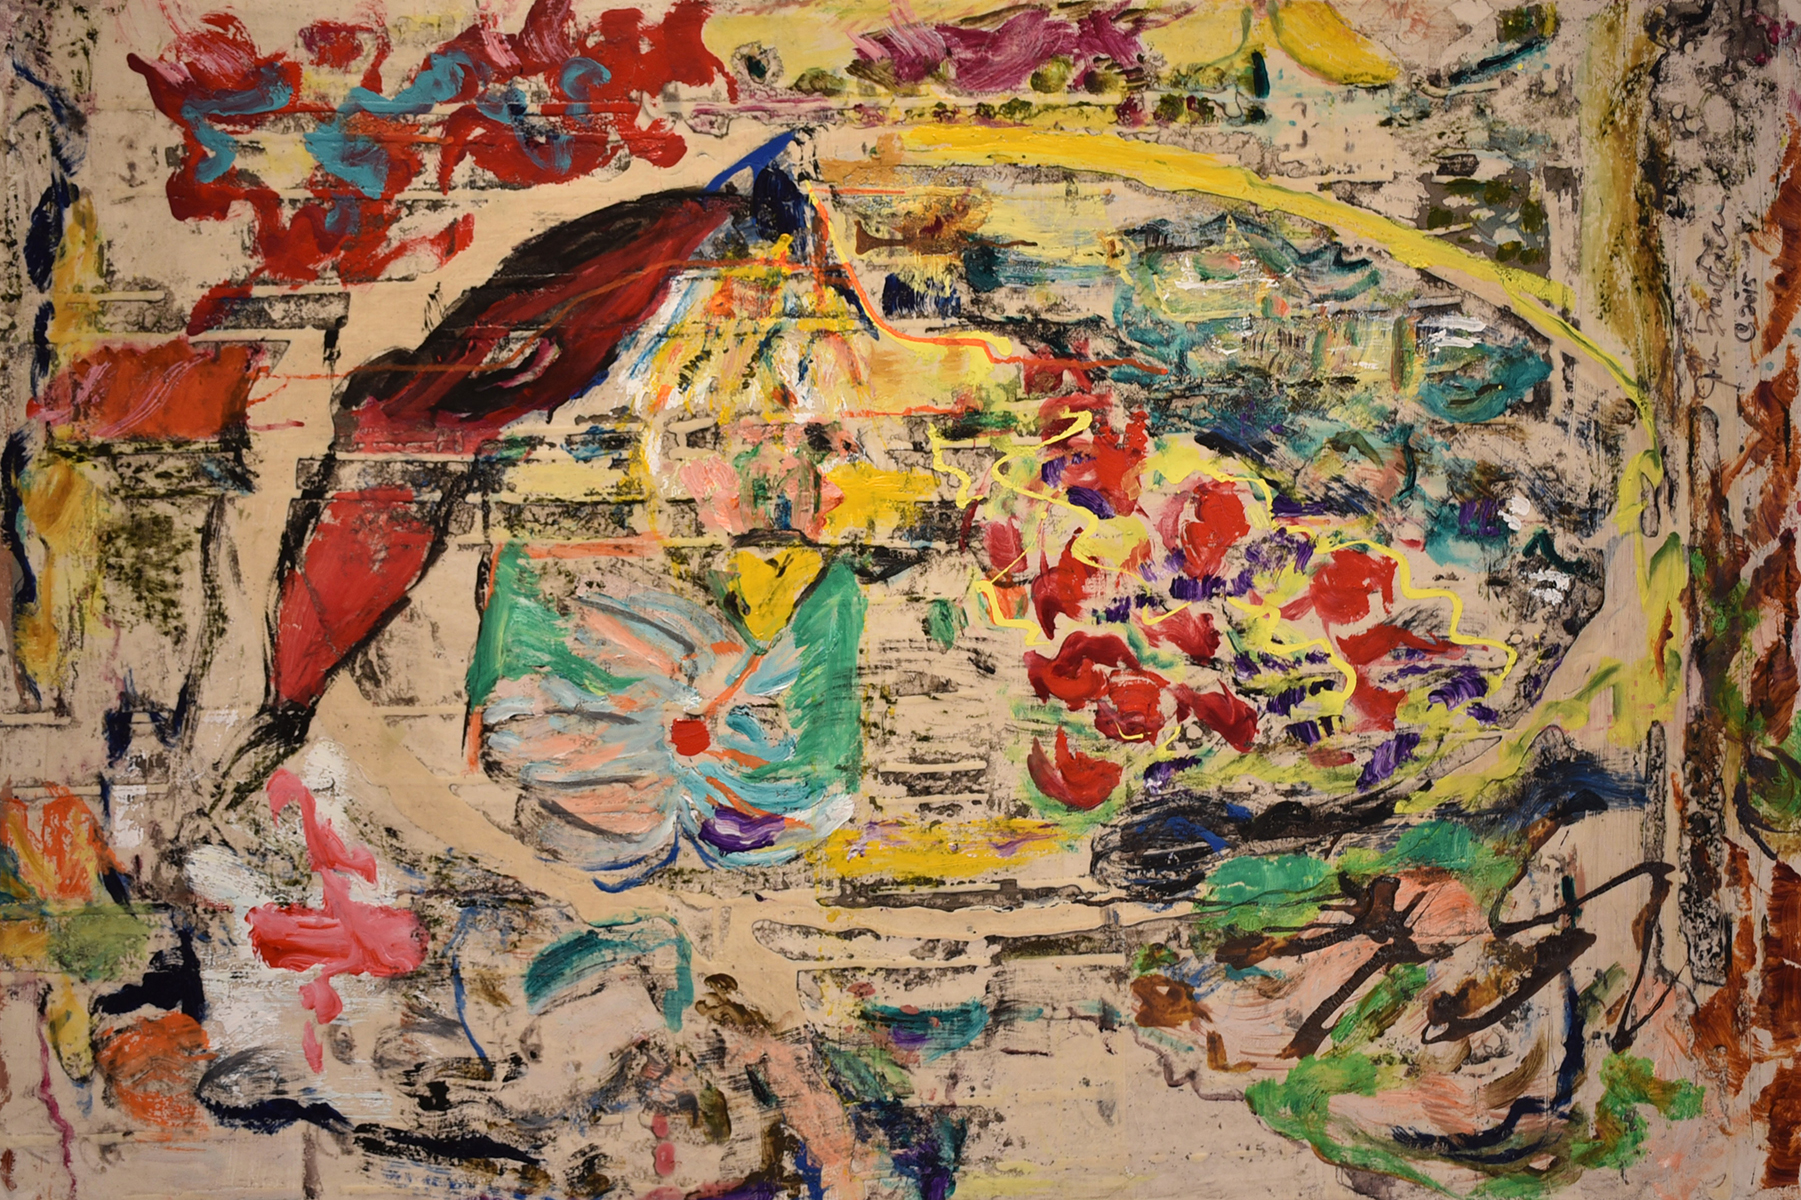 John Beardman, The Count, 2017, Mixed Media on Canvas, 32 x 48 inches, low res.jpg